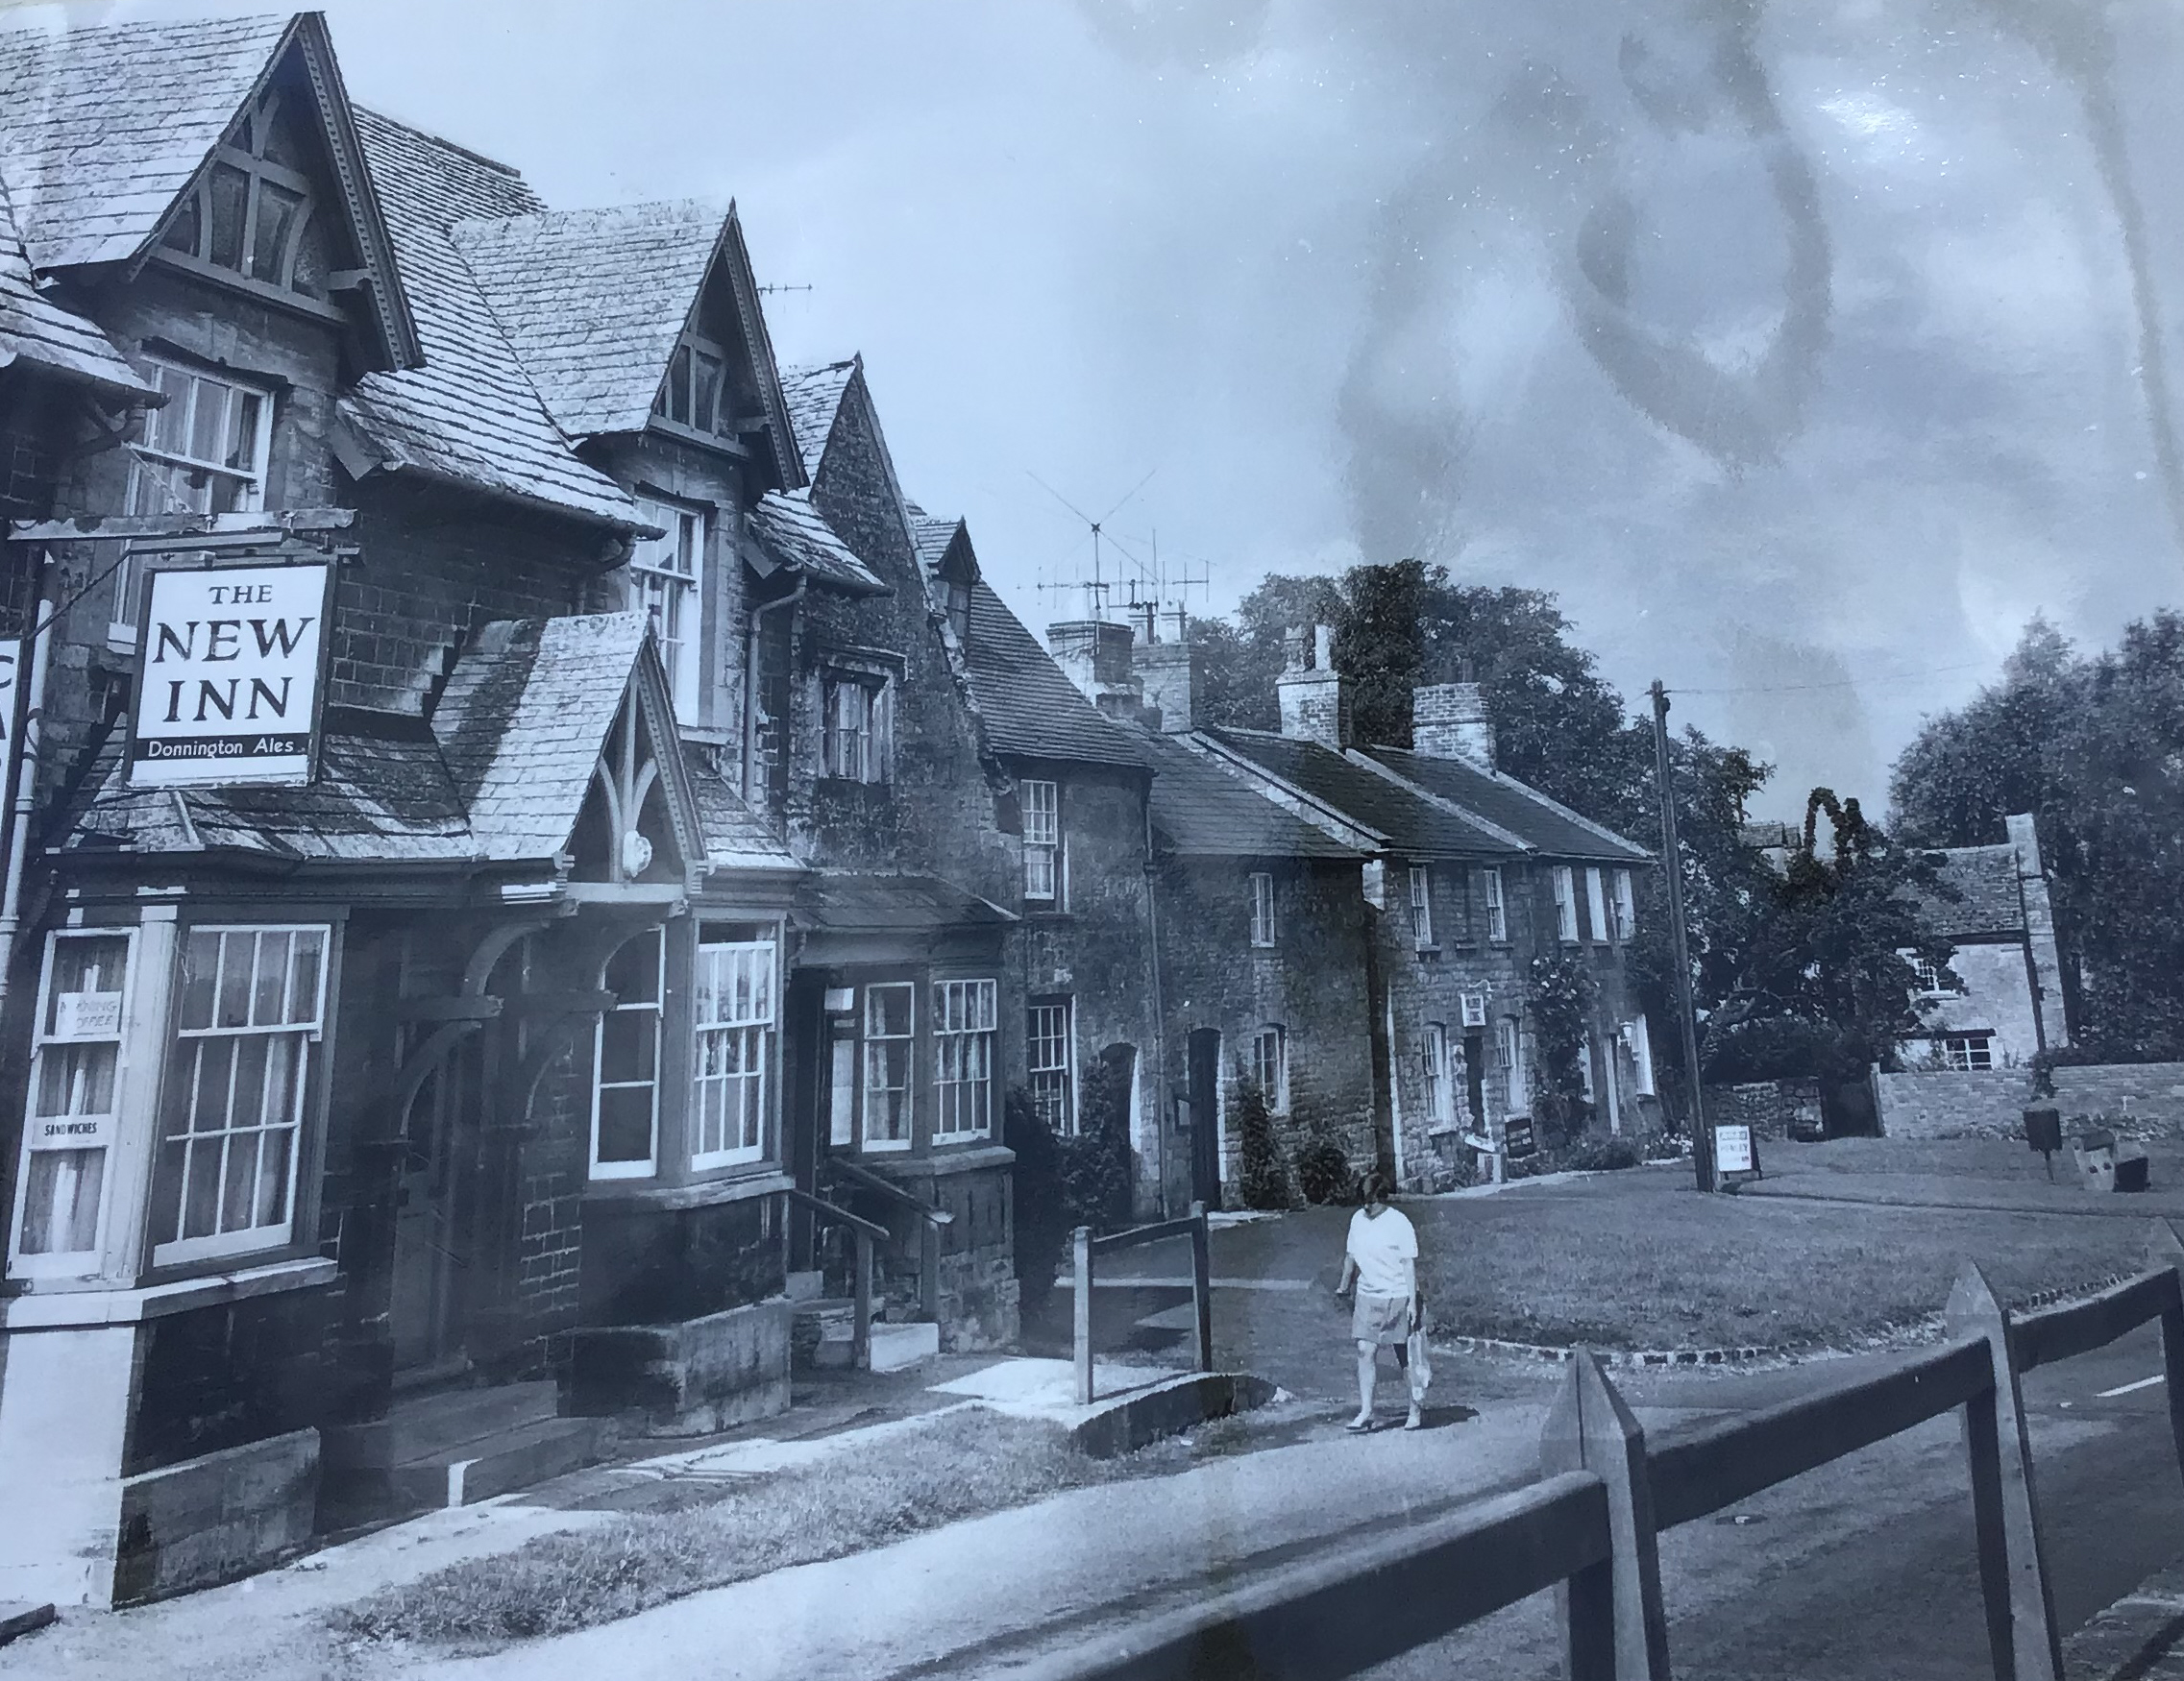 The New Inn Willersey in 1970